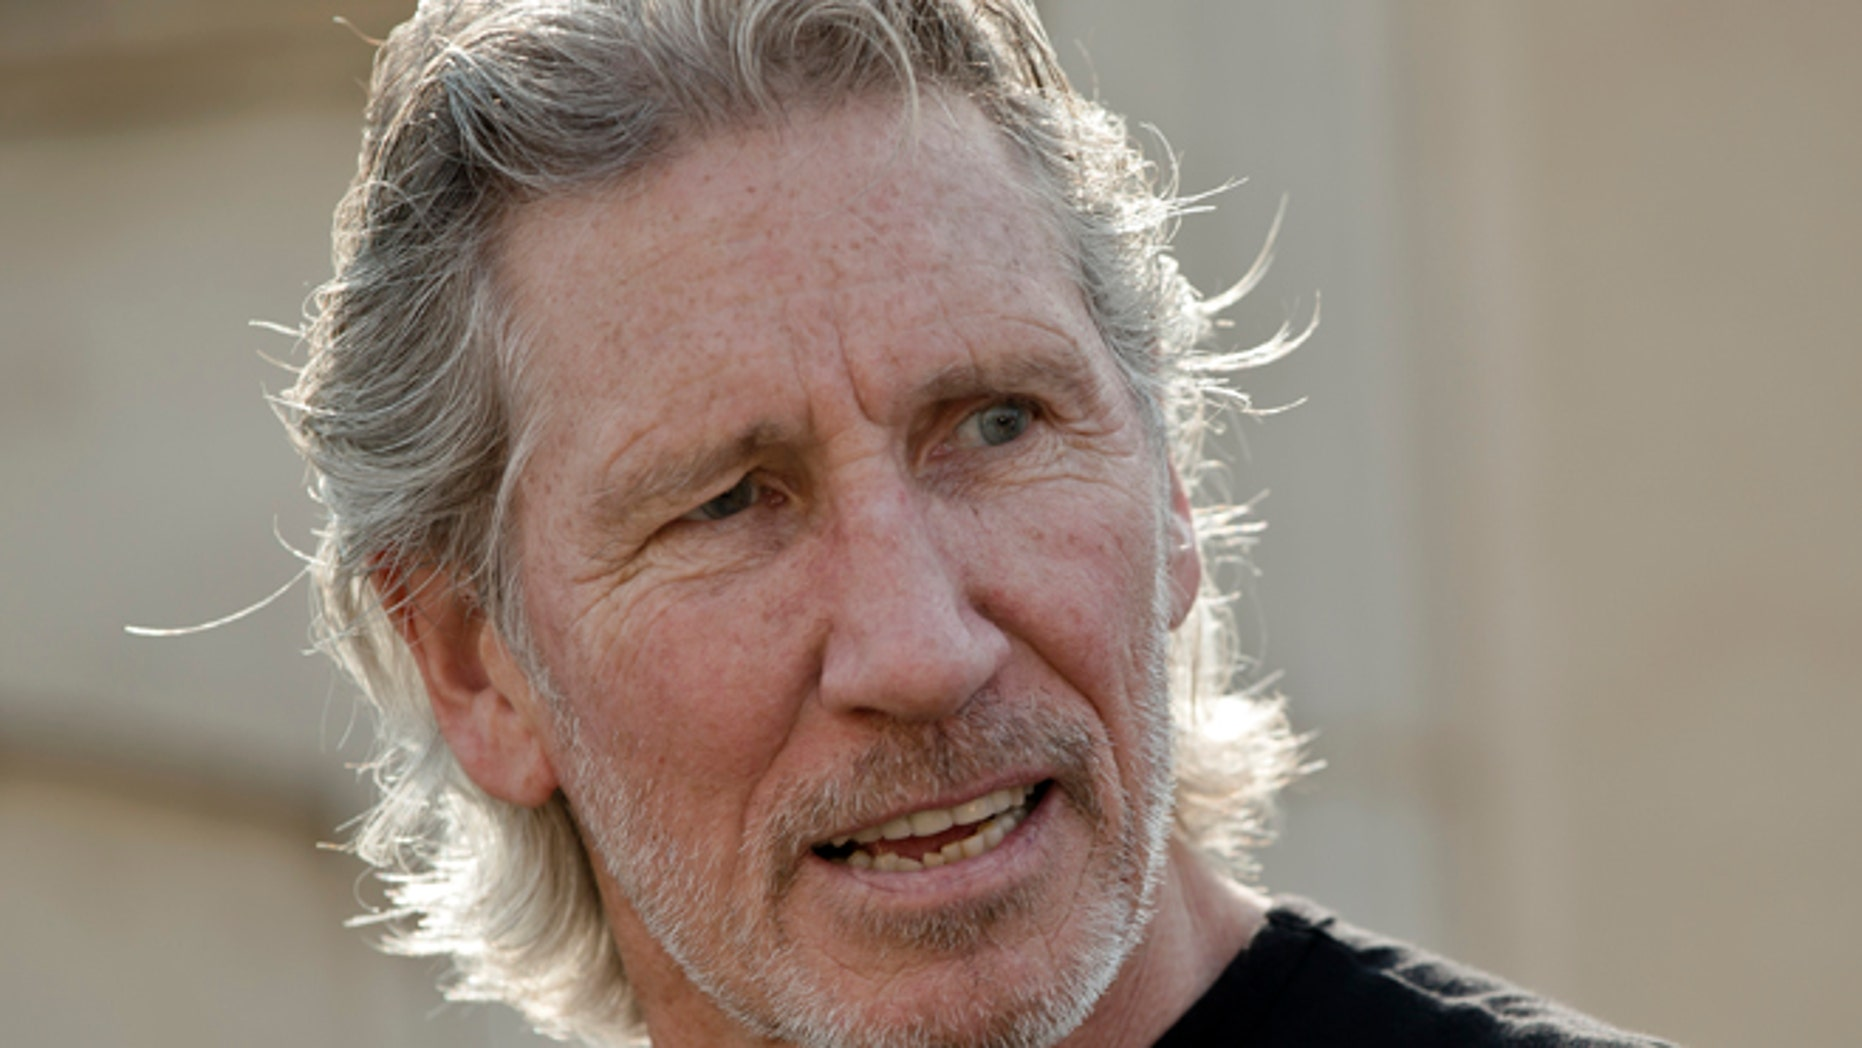 Aug. 28, 2013: Roger Waters, co-founder of the British rock band Pink Floyd reacts during a photo call before his The Wall Live show in Bucharest, Romania.